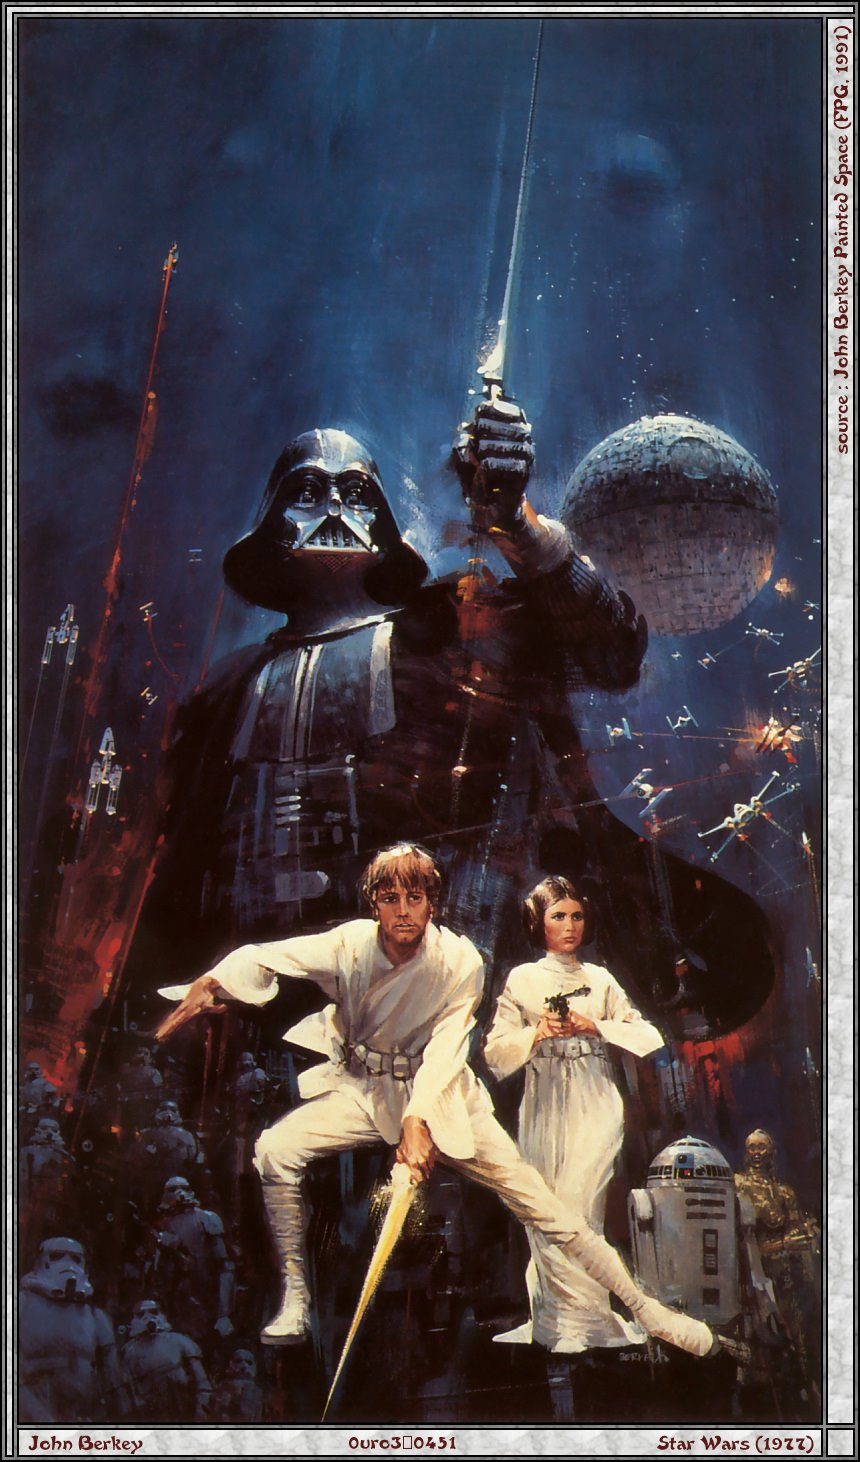 John Berkey's cover art for the novelization of Star Wars